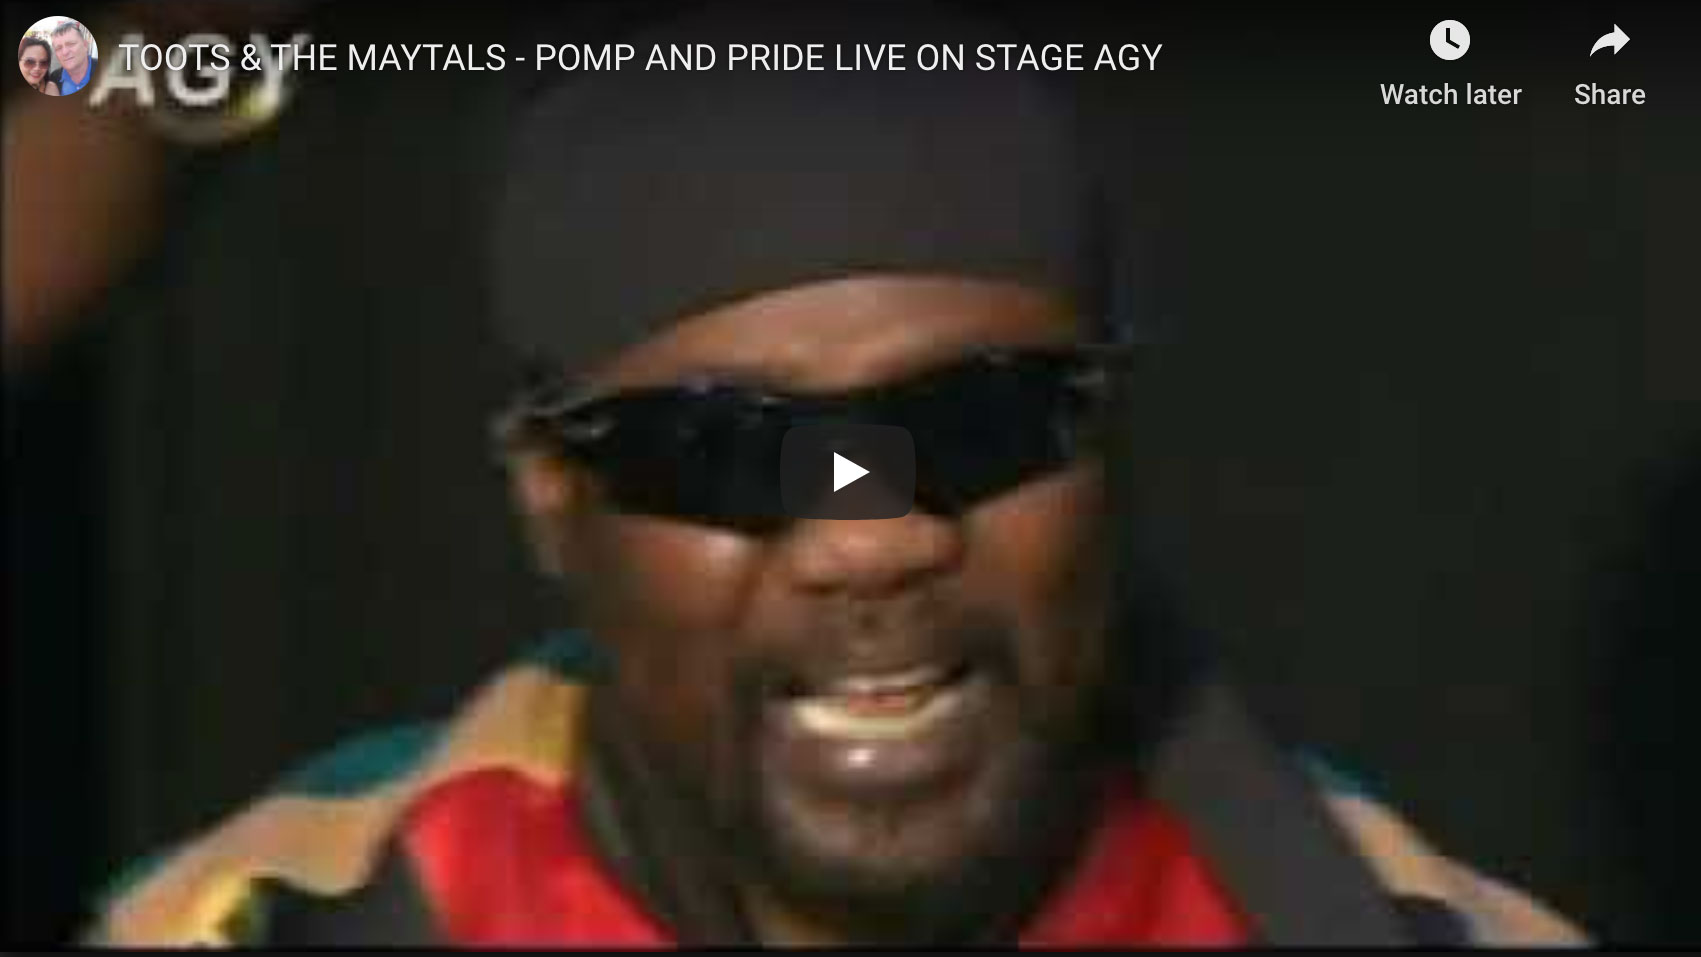 Toots and The Maytals Pomp and Pride